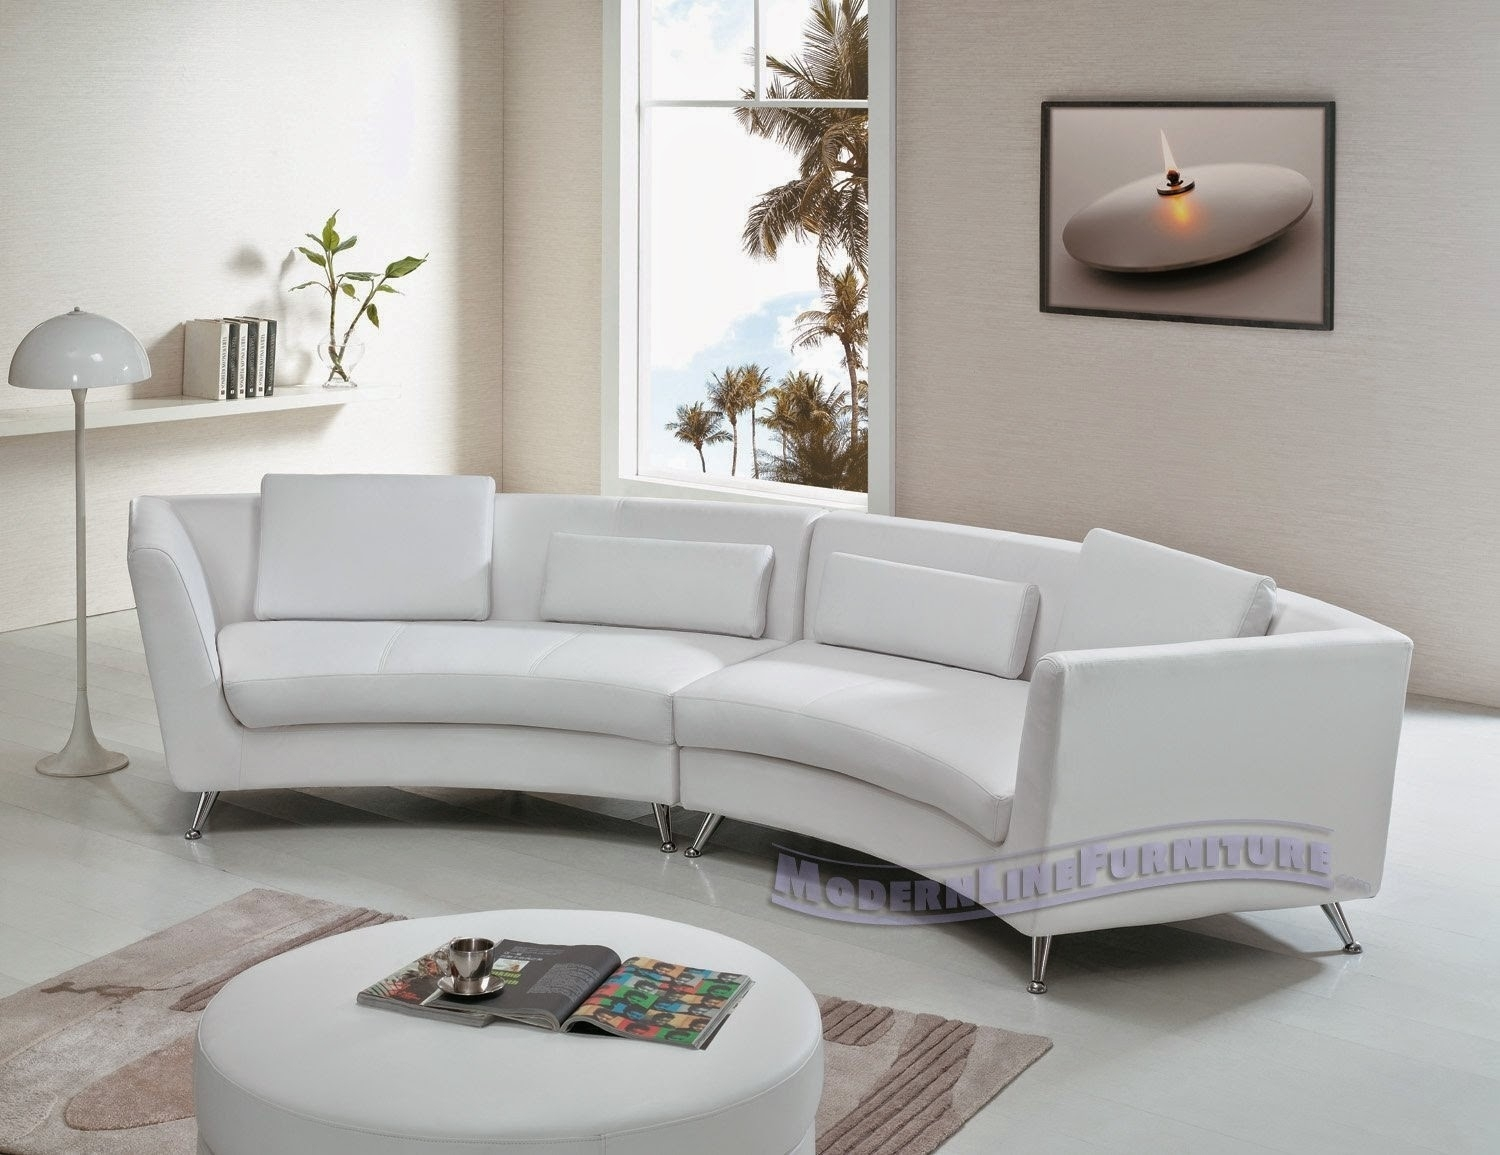 Simple The Bay Sectional Sofa 60 For Your Sectional Sofa Bed Toronto Regarding The Bay Sectional Sofas (Image 6 of 10)